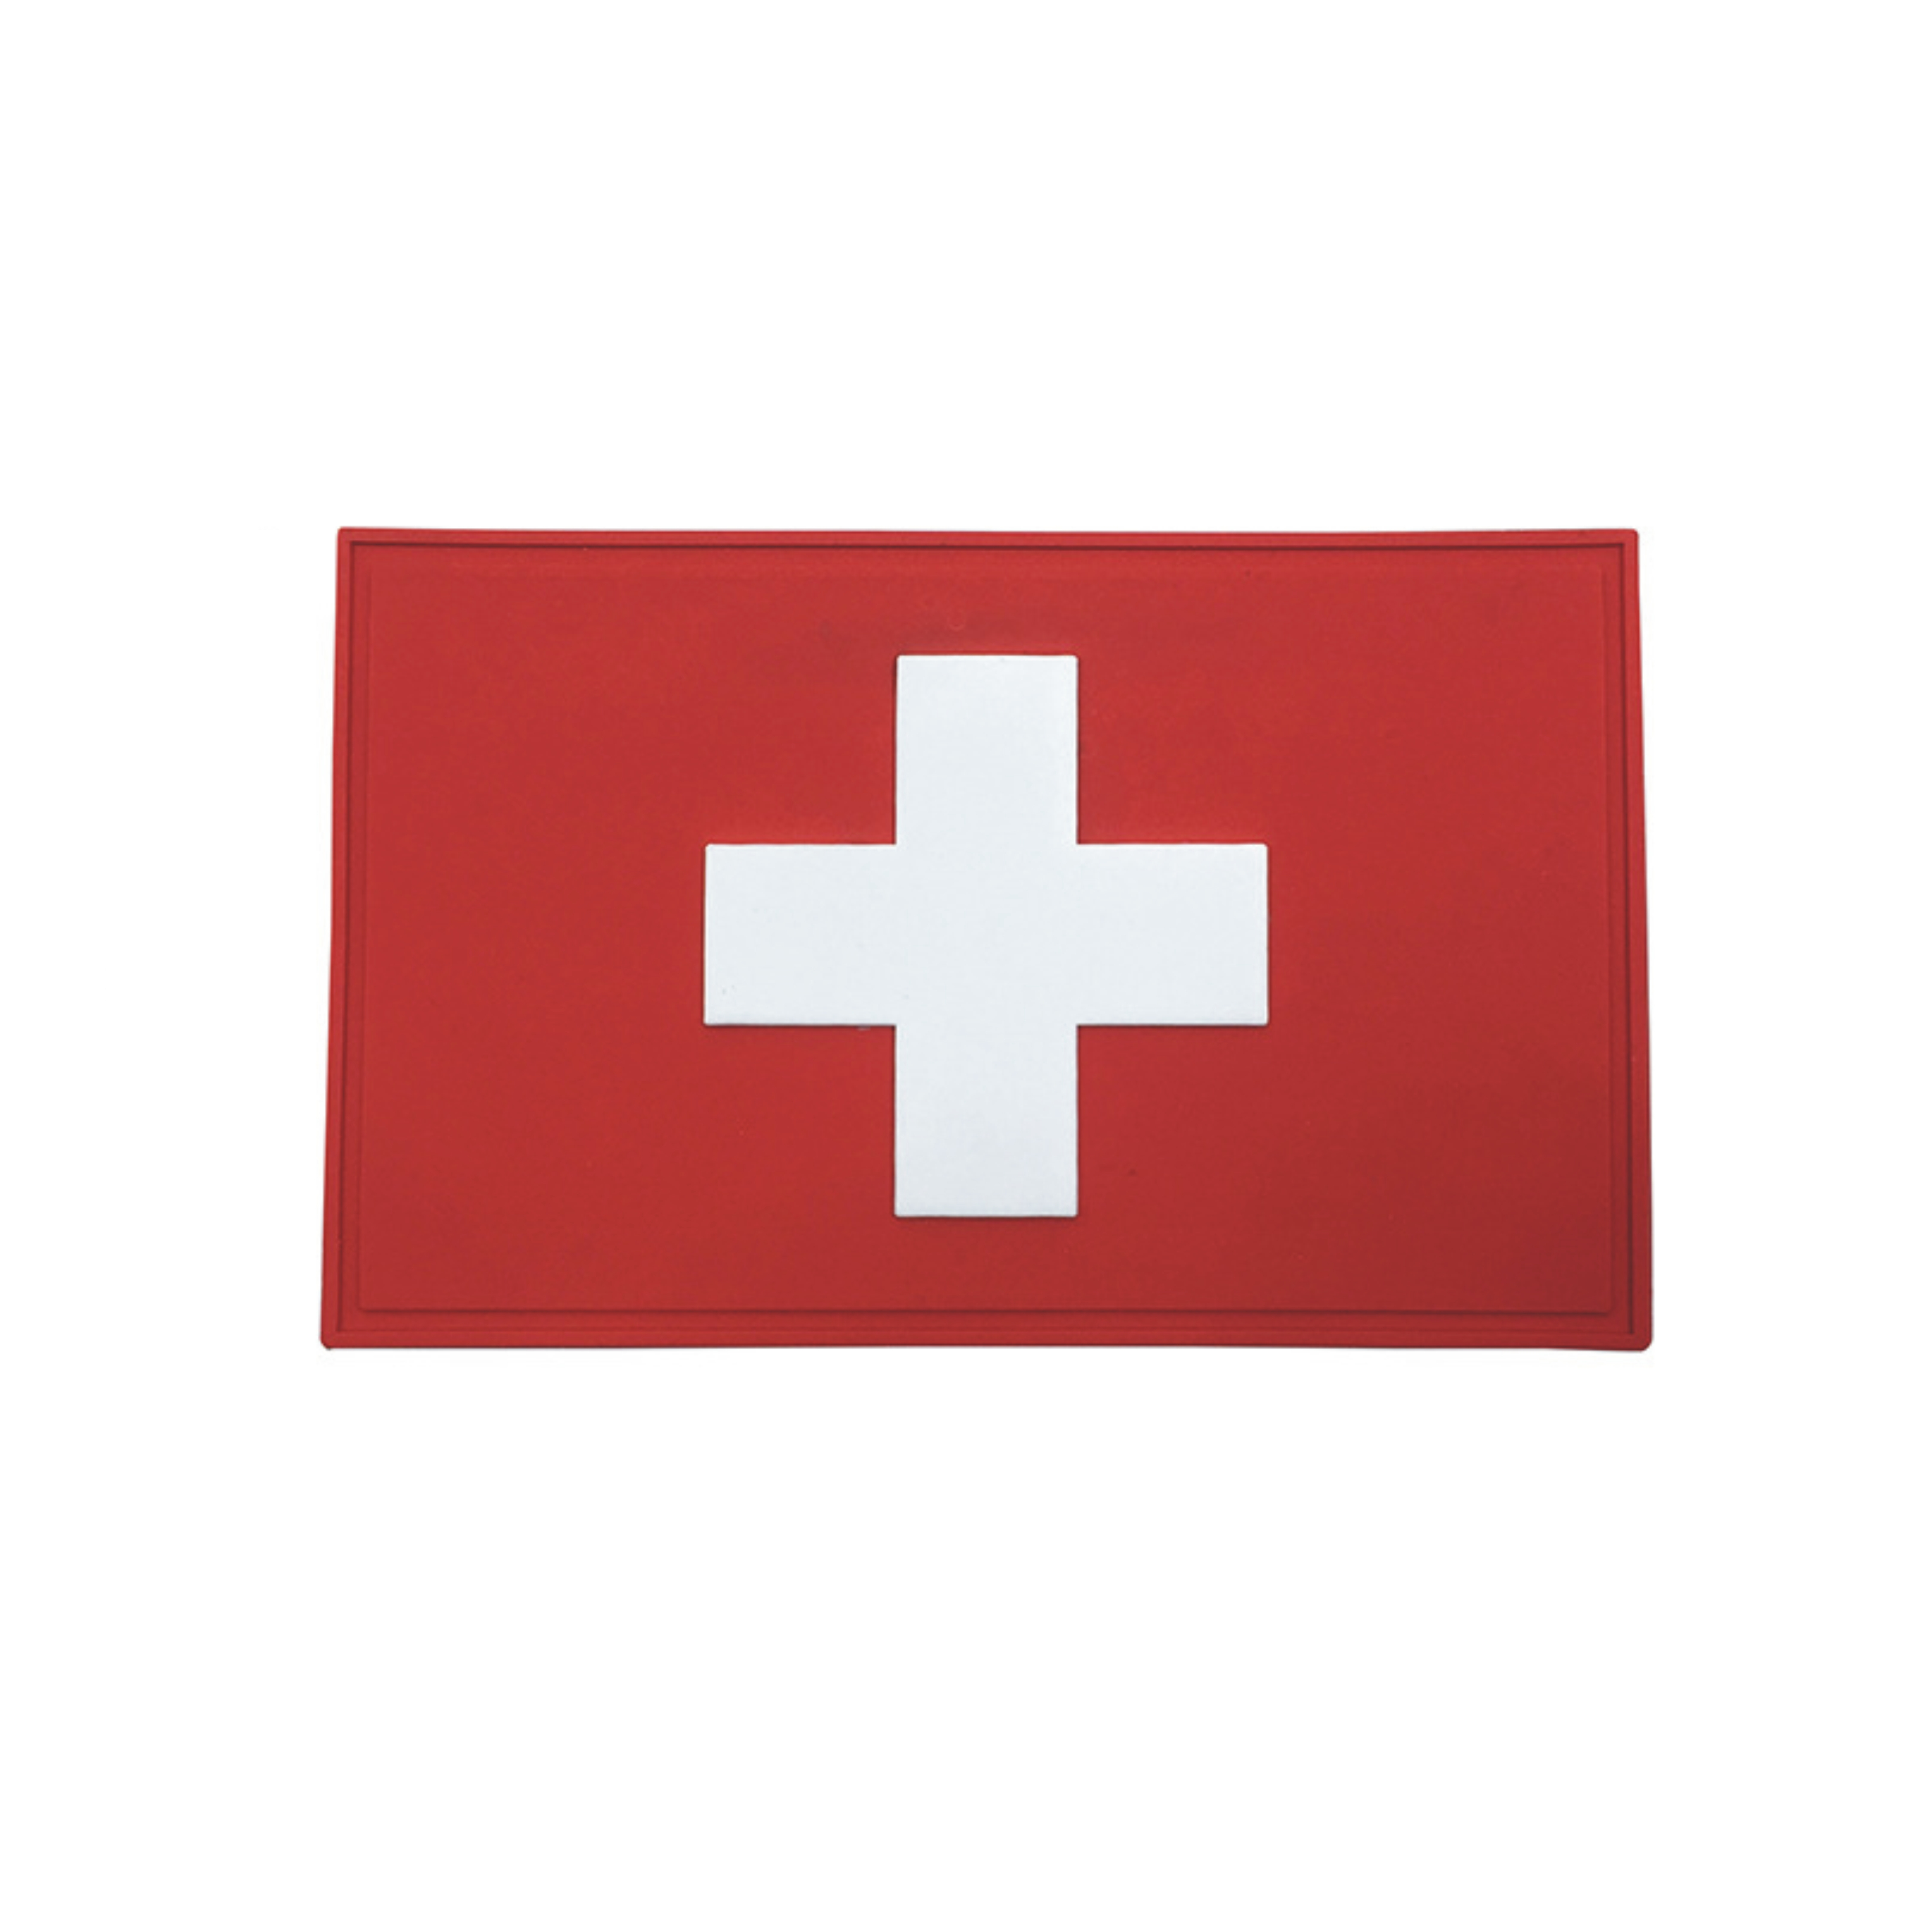 Lovely Hot Sale 3d Pvc Rubber Medic Paramedic Tactical Army Morale Badge Patches Red Cross Flag Of Switzerland Swiss Cross Patch Entertainment Memorabilia